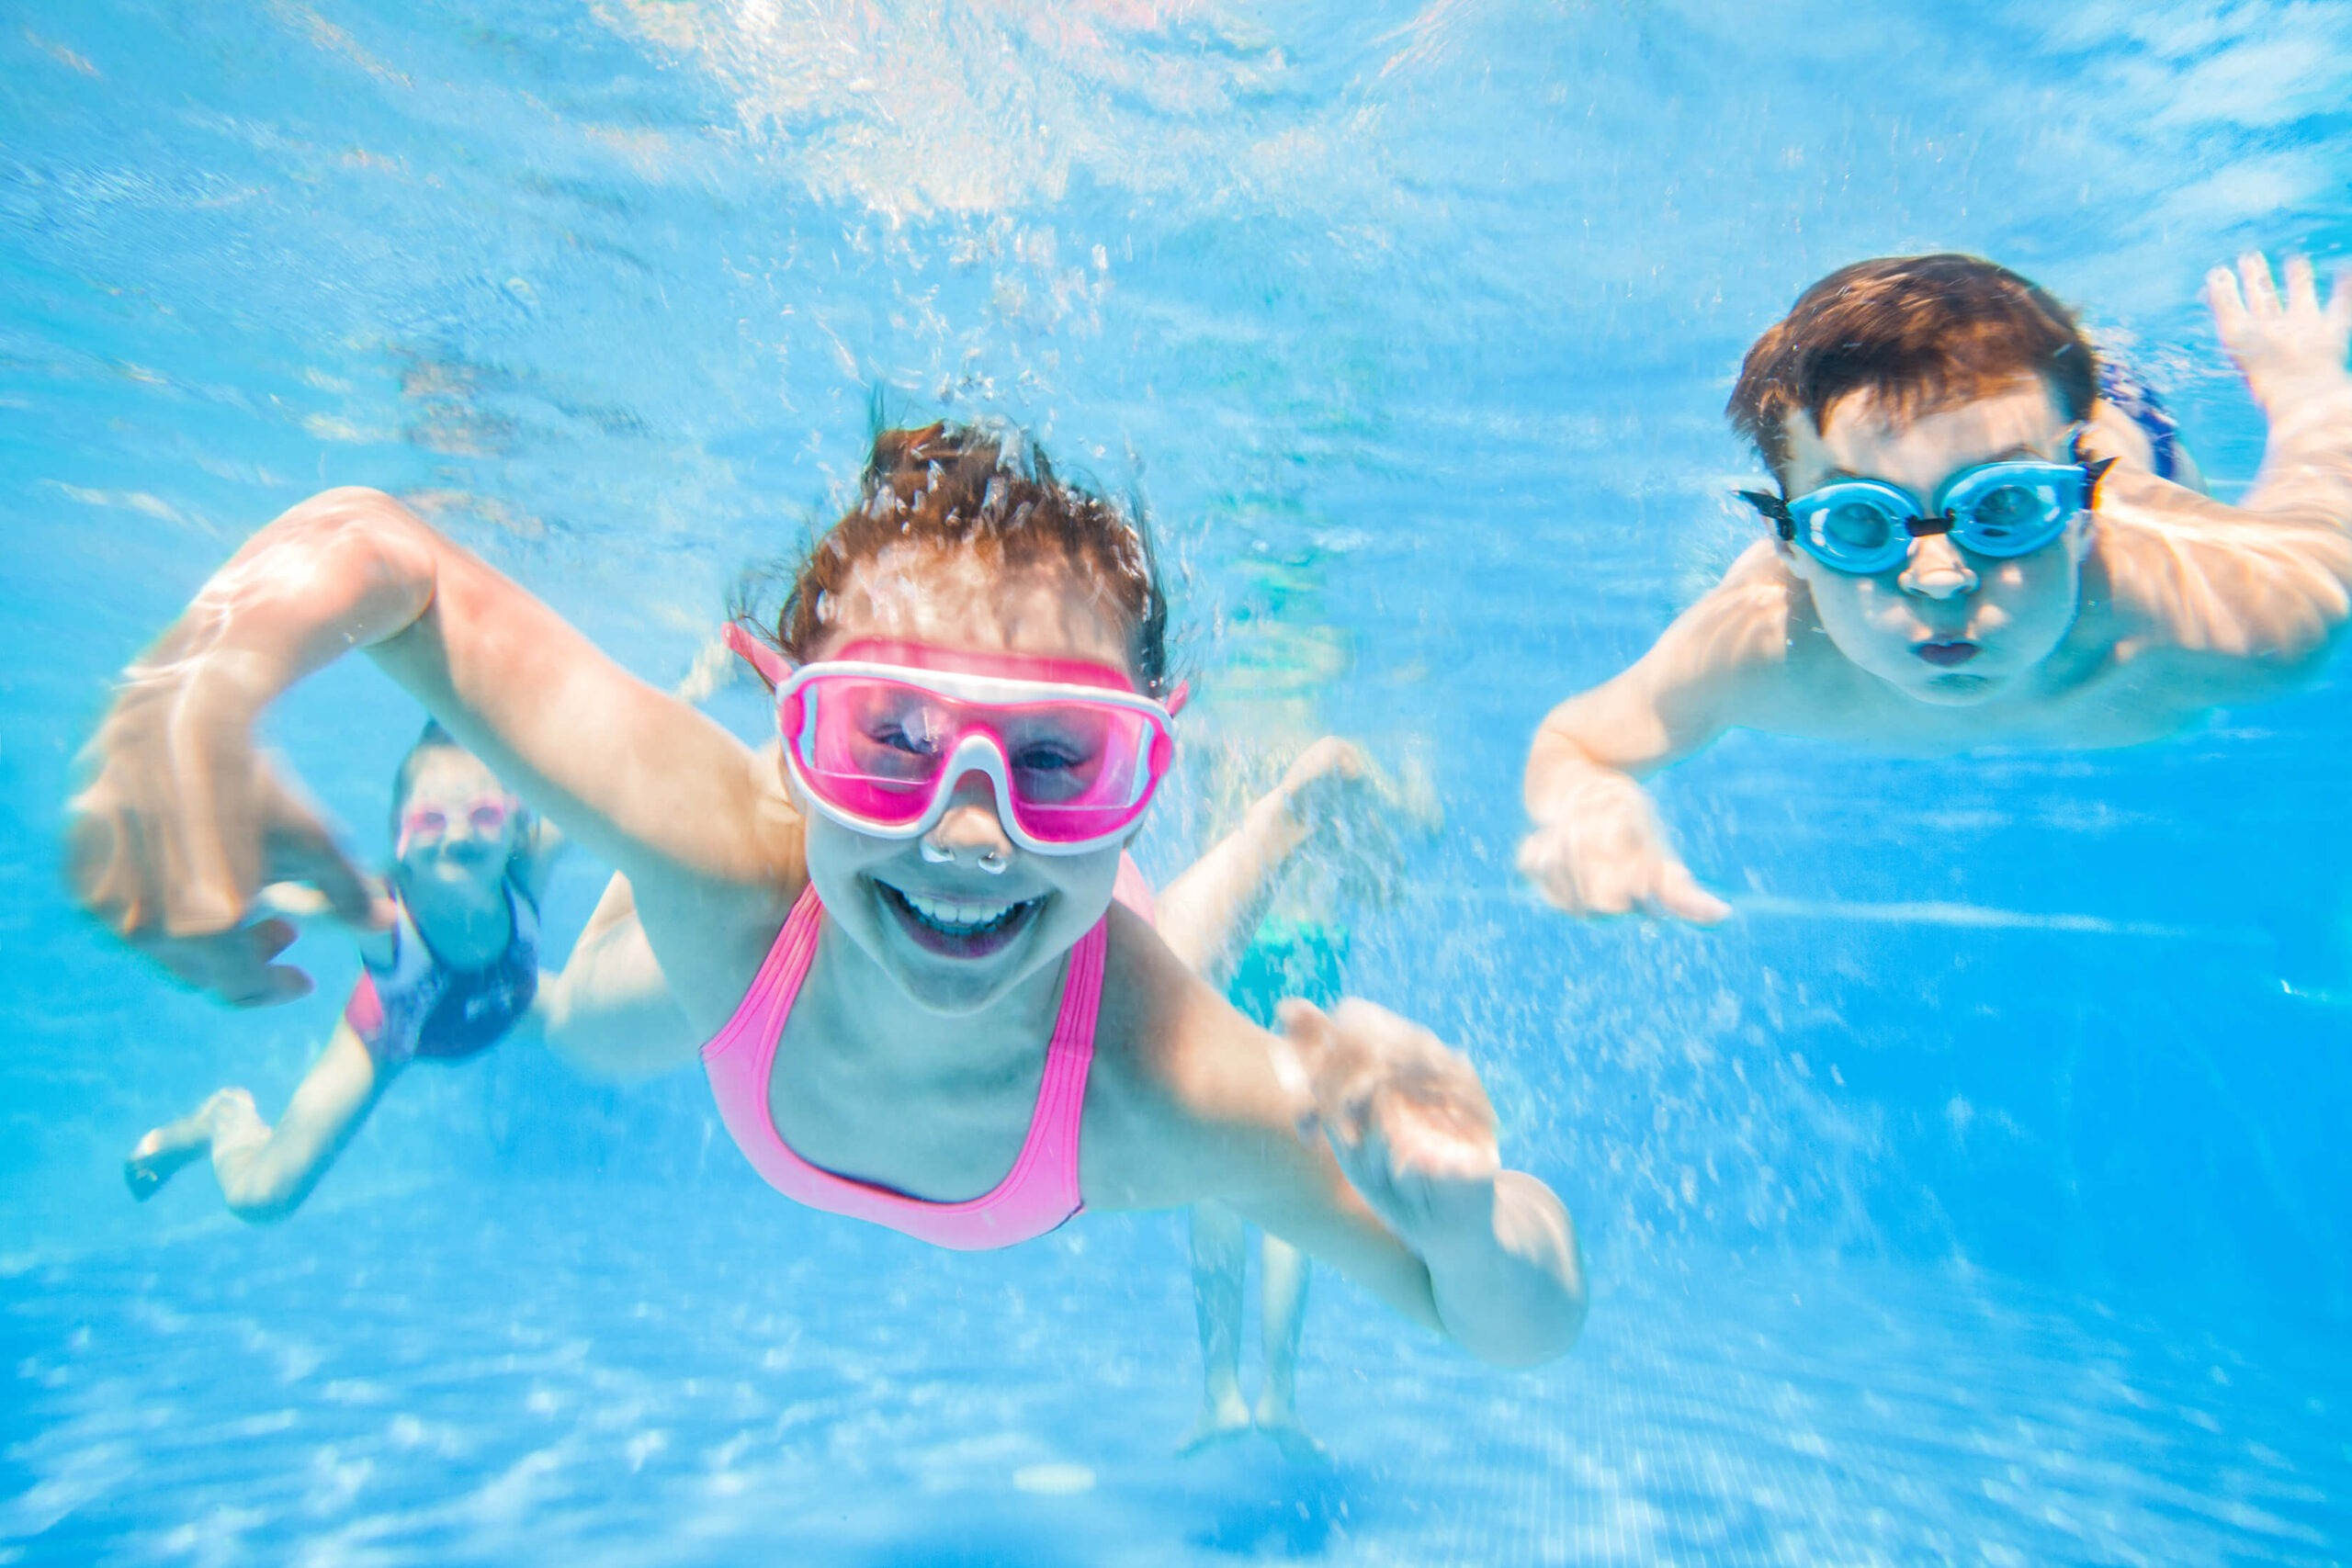 Free market potential assessments for UK leisure pool operations